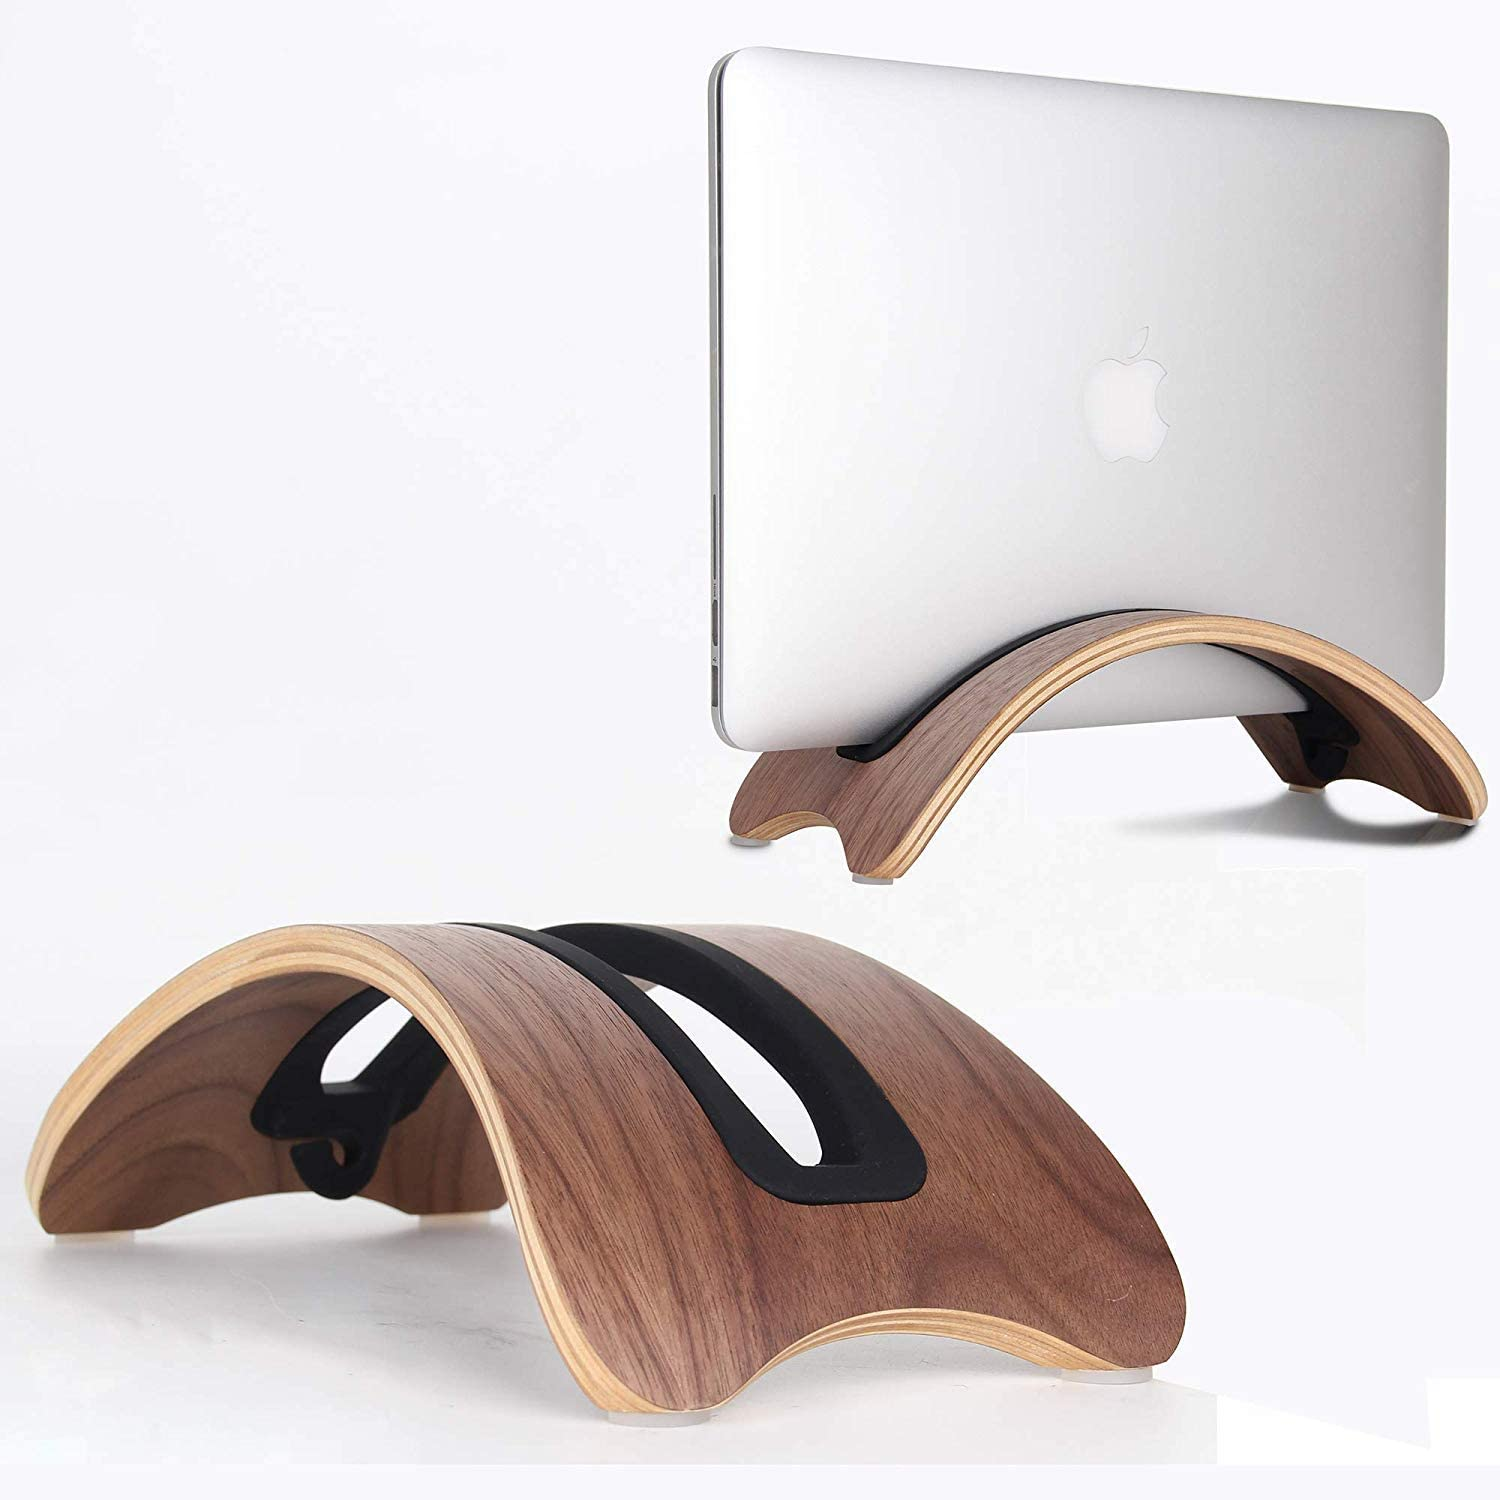 Bl BELK Extensive Type Laptop Suitable Kickstand Second-Gen Wood BookArc for MacBook Pro//Retina//Air Portable Laptop Stand with Thicker Slots for Generic Notebook,Lenovo Laptop Yoga Y50 ThinkPad Dell Laptop XPS Venue Inspiron ASUS Laptop Light Color Paint